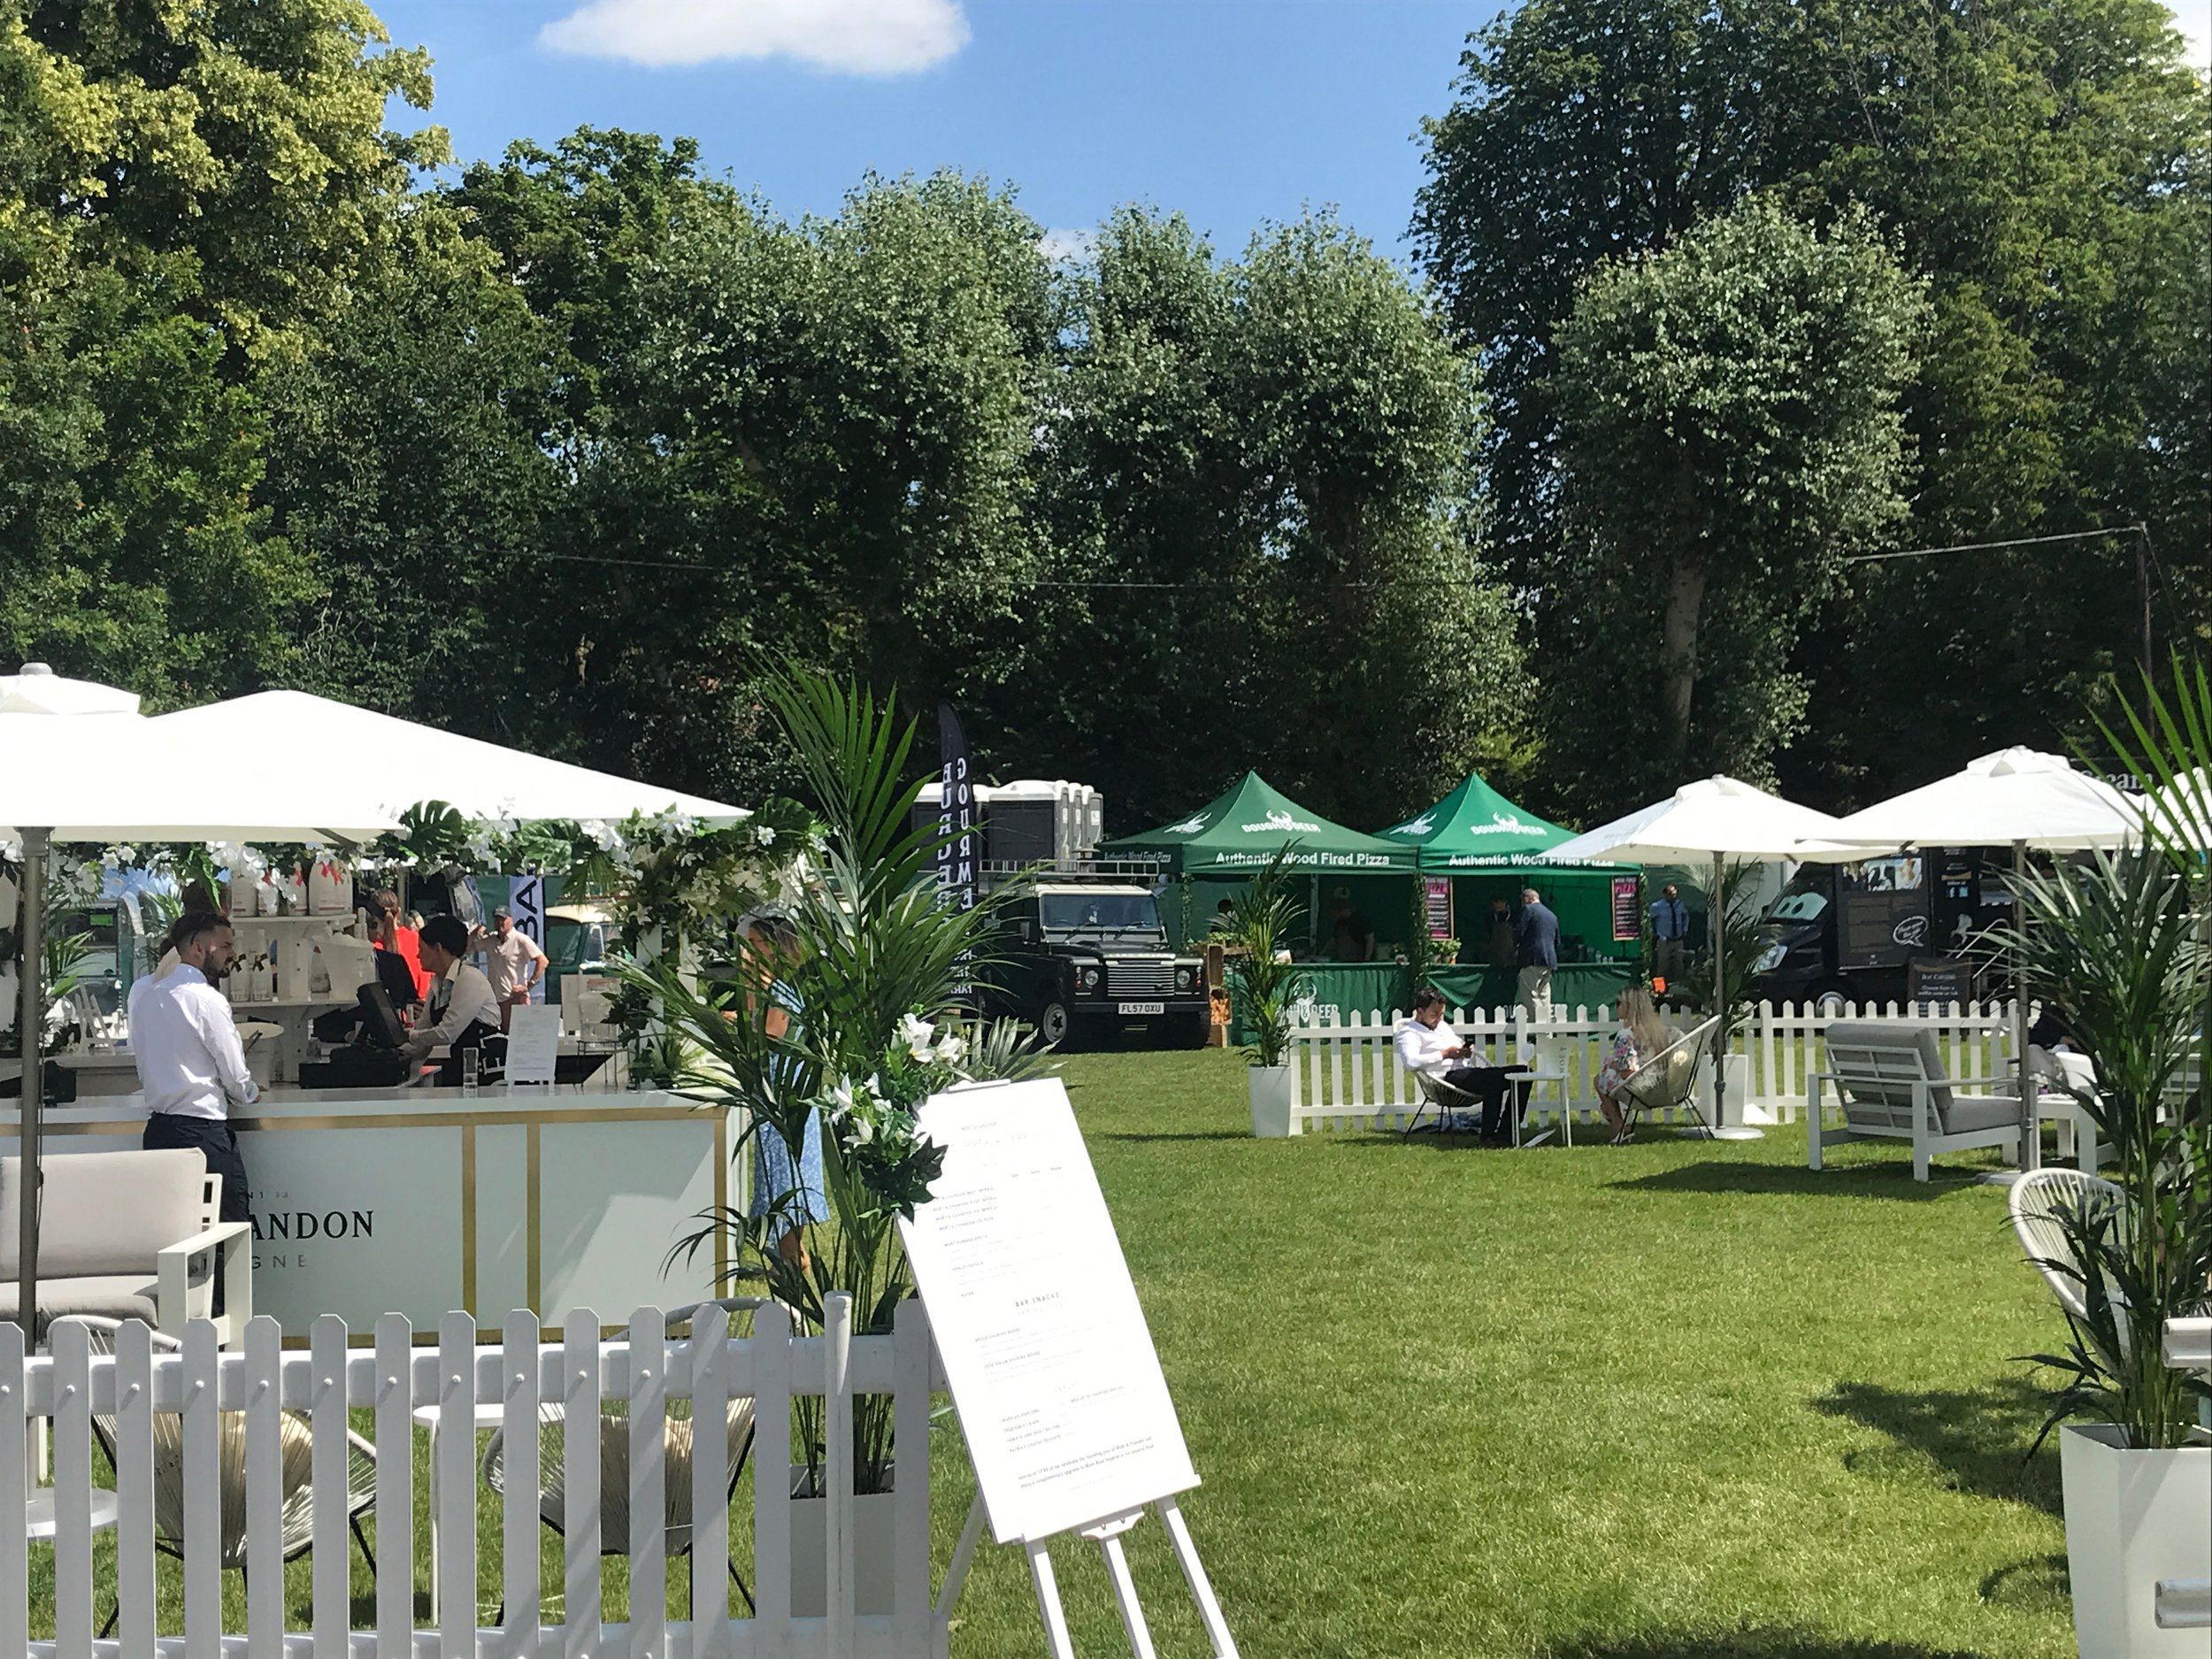 Large Events & Festivals - We can provide catering for events of all shapes and sizes so if you are planning a large event and have some specific catering needs please get in touch for a chat about our large event services. Our Pizza van is perfect for events that require a premium catering service, whether your looking to cater for VIP's or hungry customers then we can help!